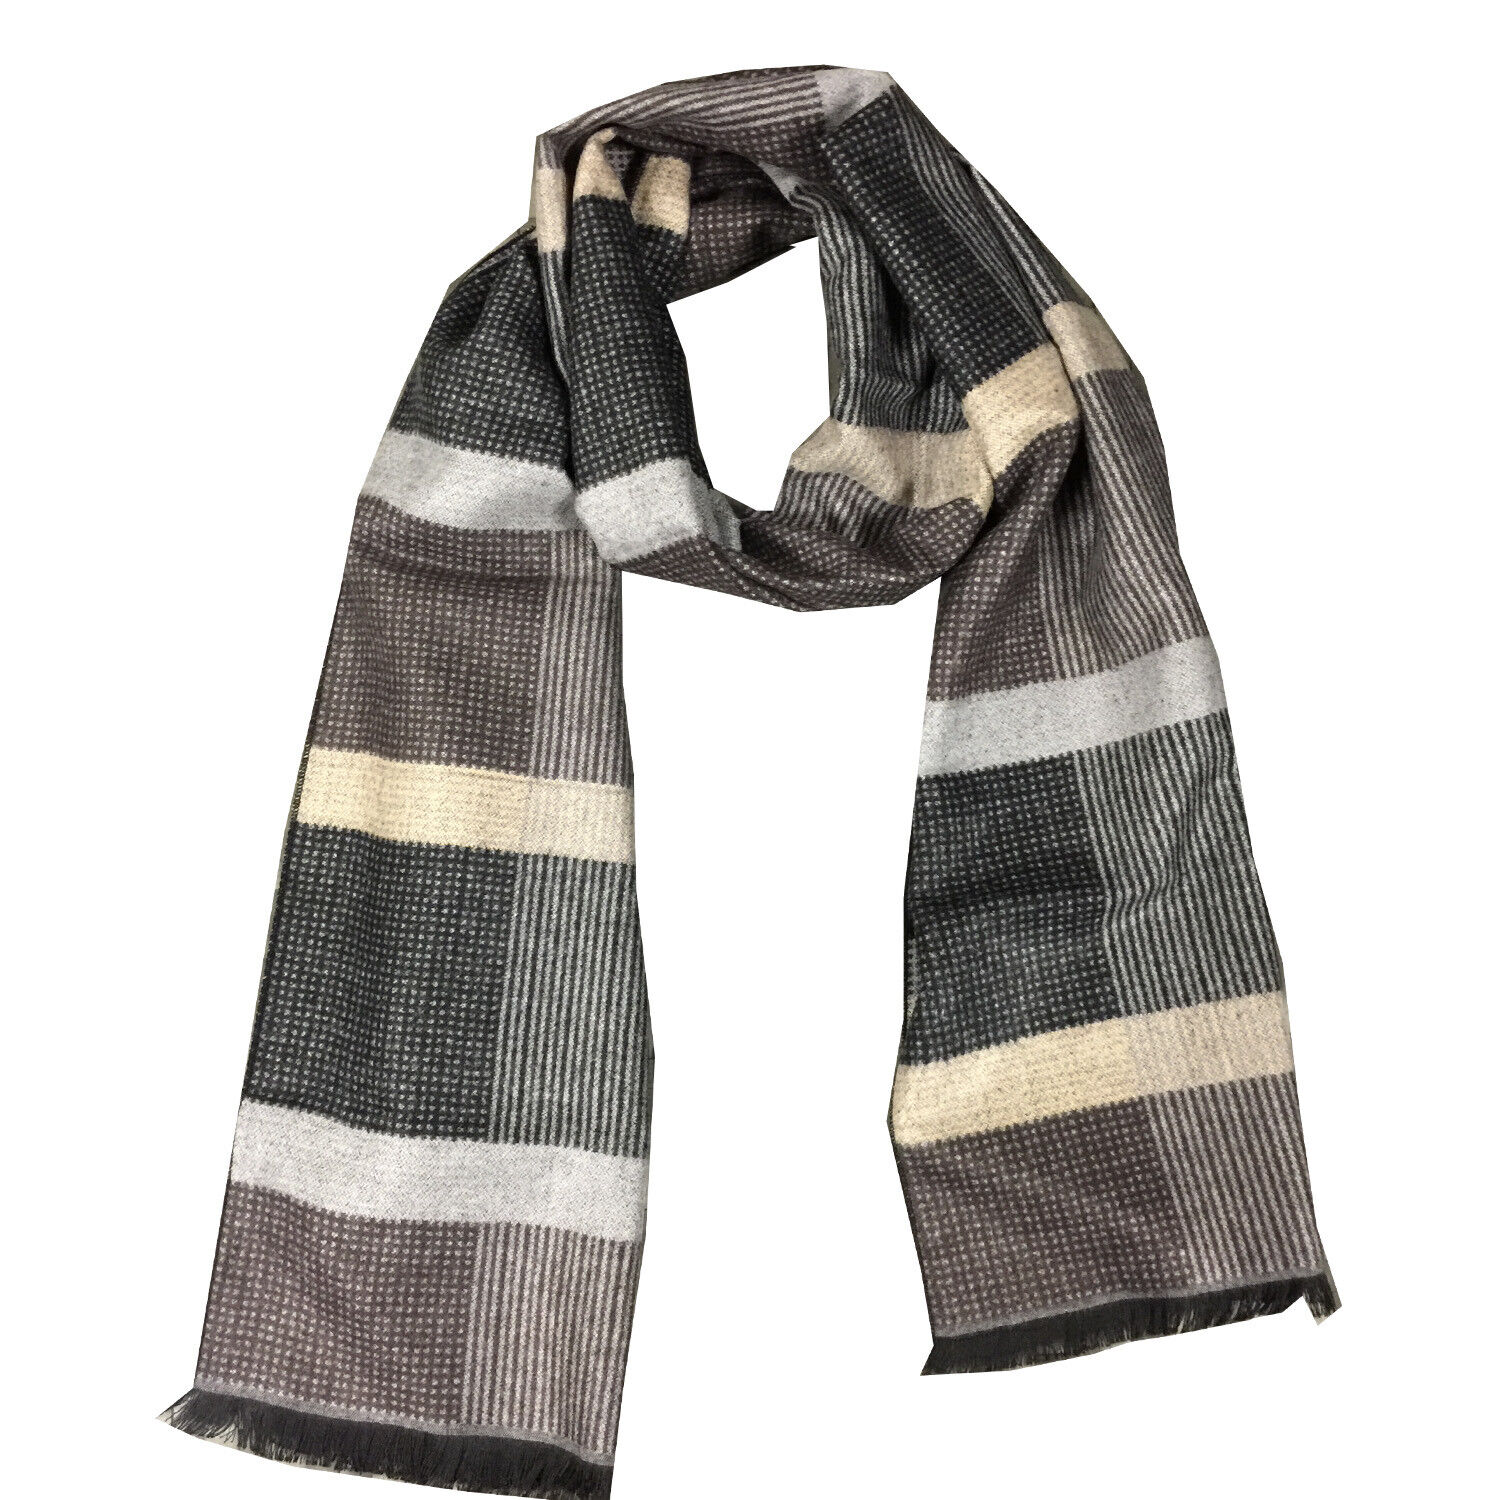 Men's Long Cashmere Feel Scarf, Fall and Winter Warm Scraf Clothing, Shoes & Accessories